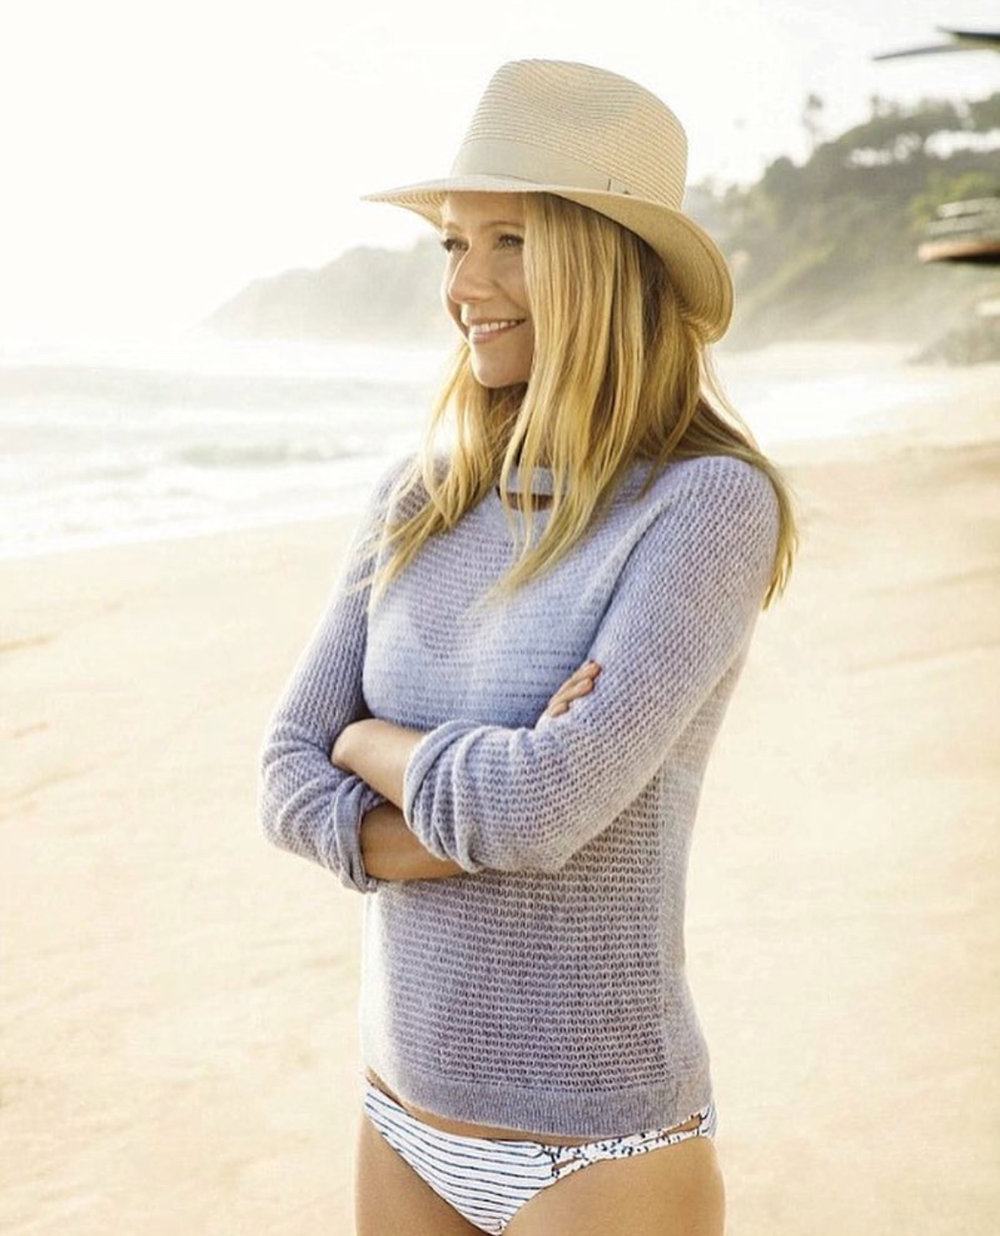 Gwyneth Paltrow/ Goop Clean Beauty